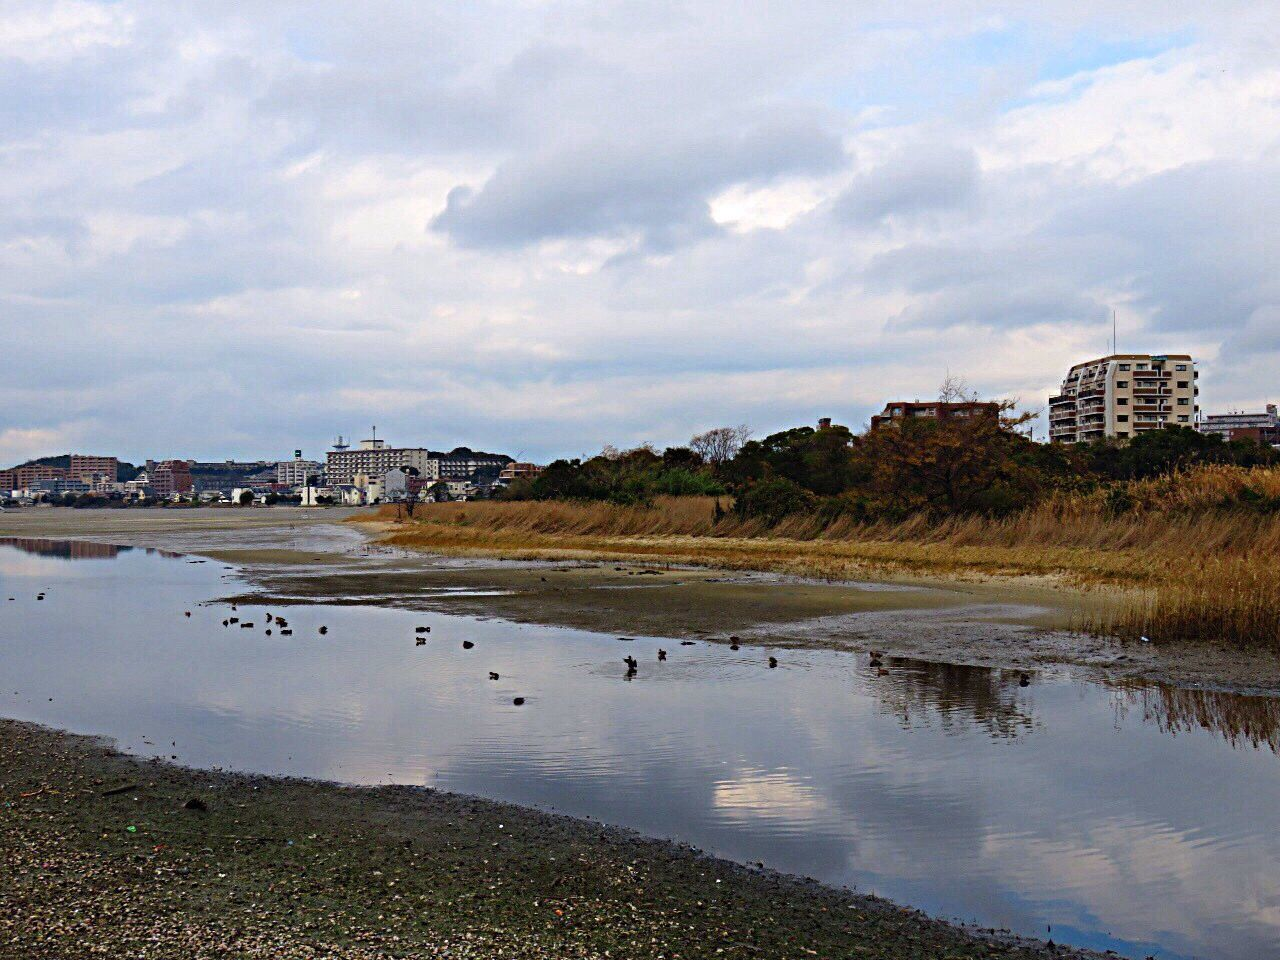 Waterreflections  Skyreflection River River View Birds Clouds Sky Sky_collection Sea Seaside Seascape Sea And Sky Clouds And Sky Reflection Wajirohigata 和白干潟 干潟の風景 鳥 反射